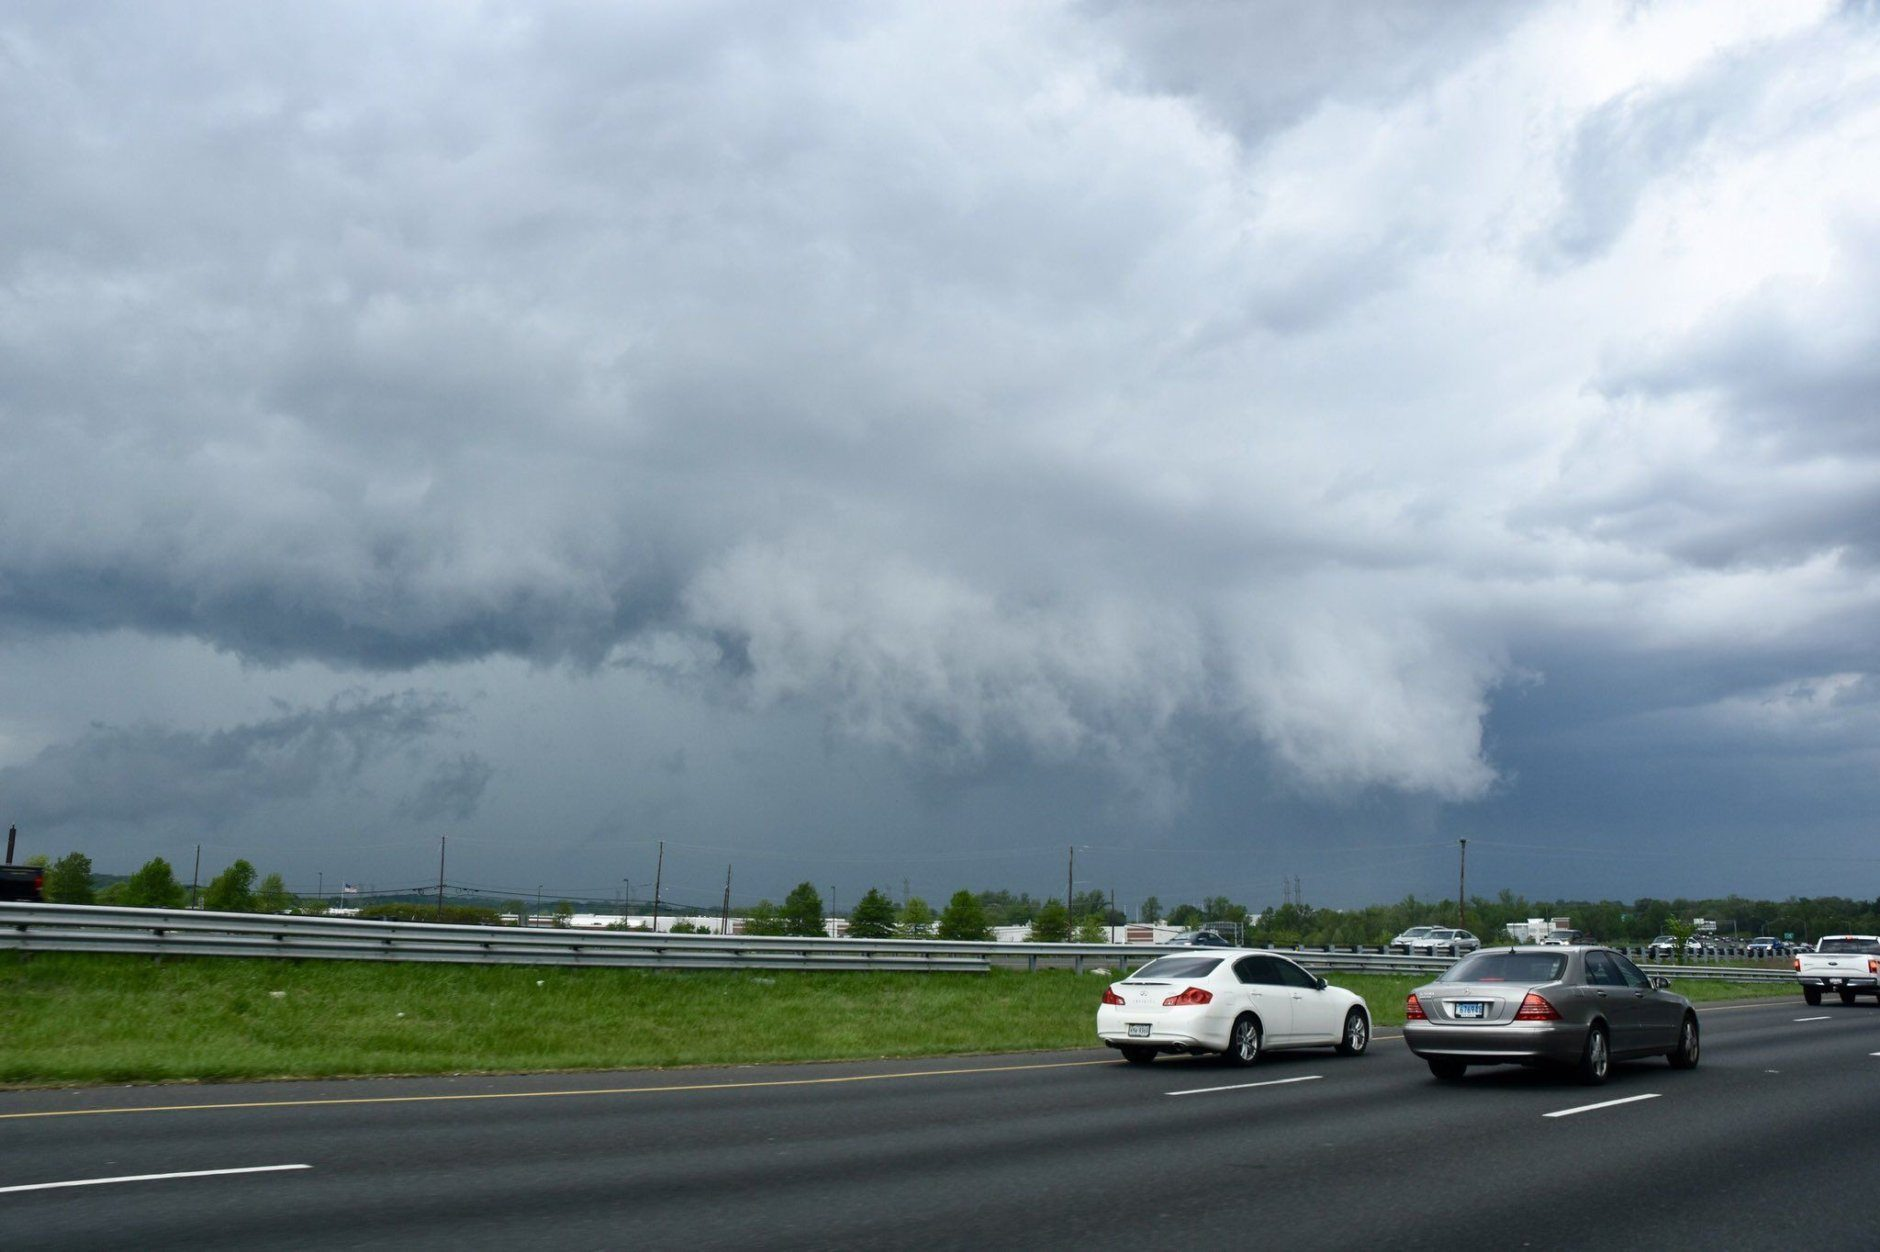 A severe thunderstorm north of Landover was heading toward Bowie and intensifying Friday afternoon. (WTOP/Dave Dildine)